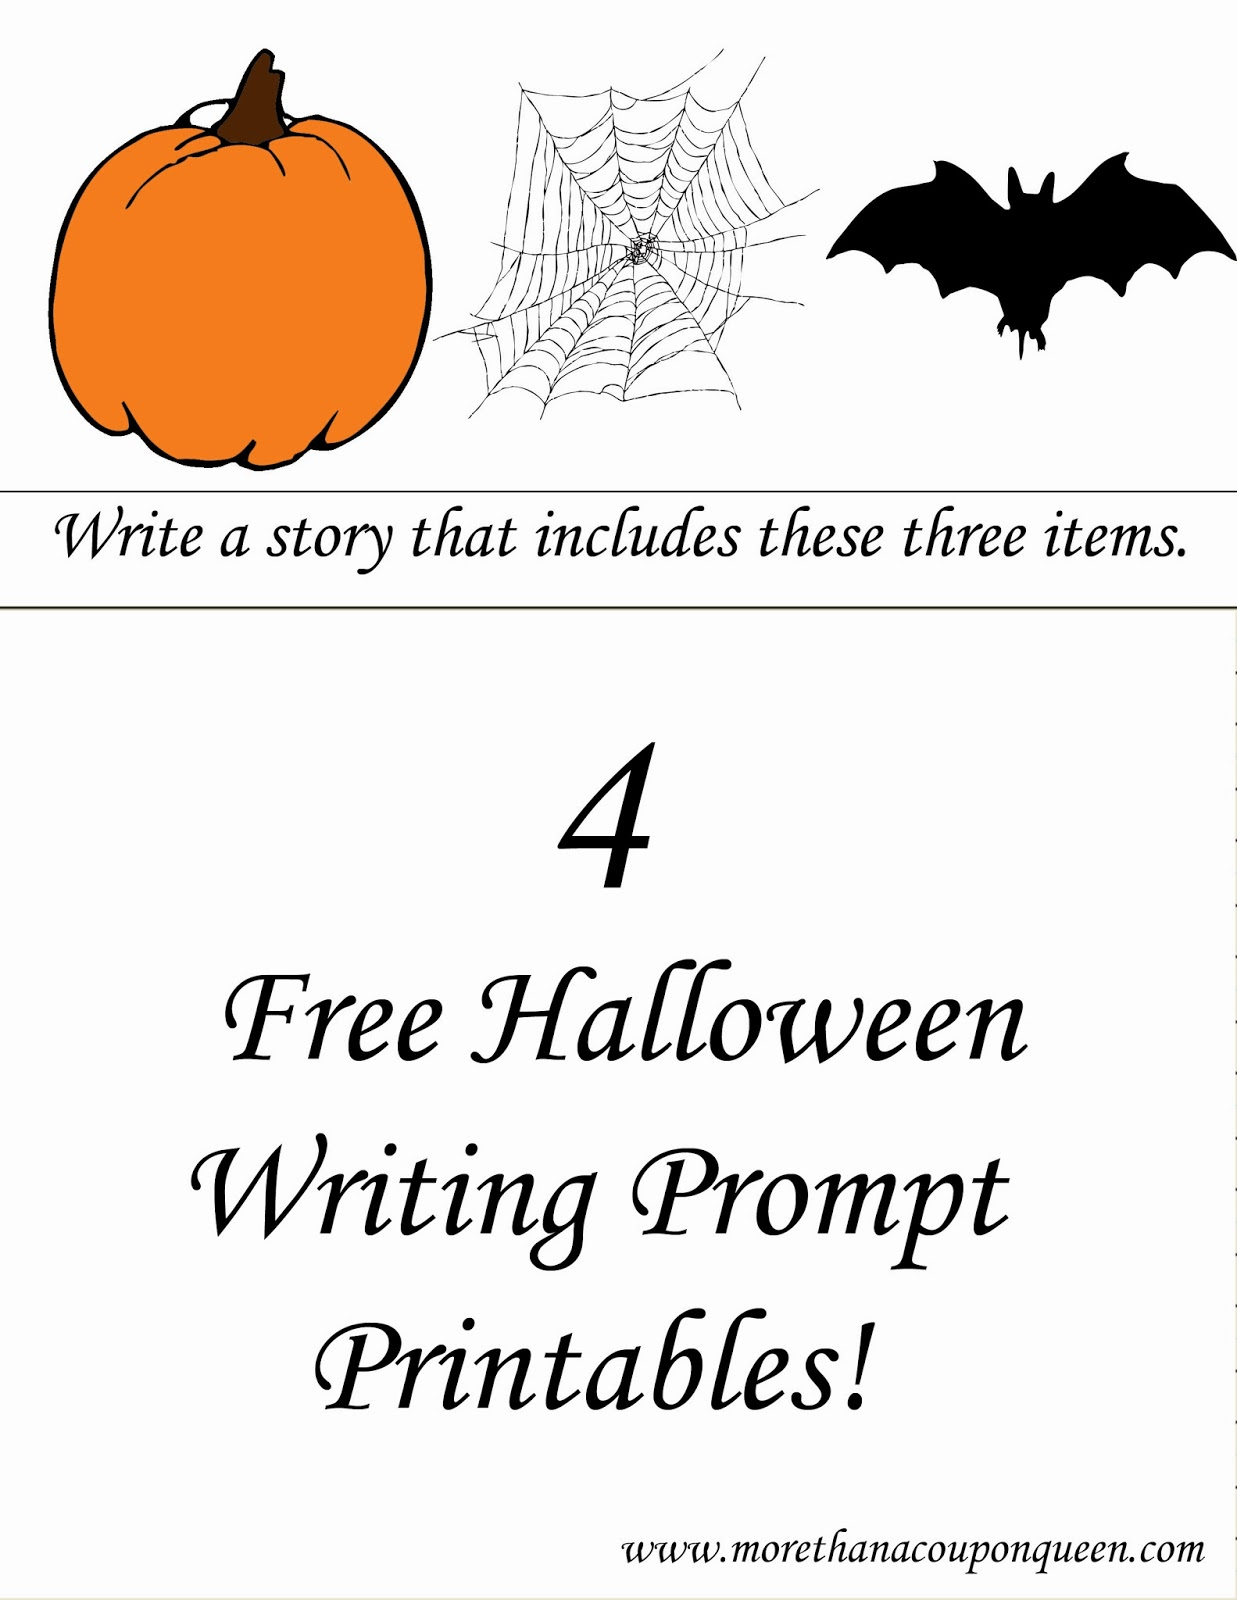 Halloween Writing Prompt Printables